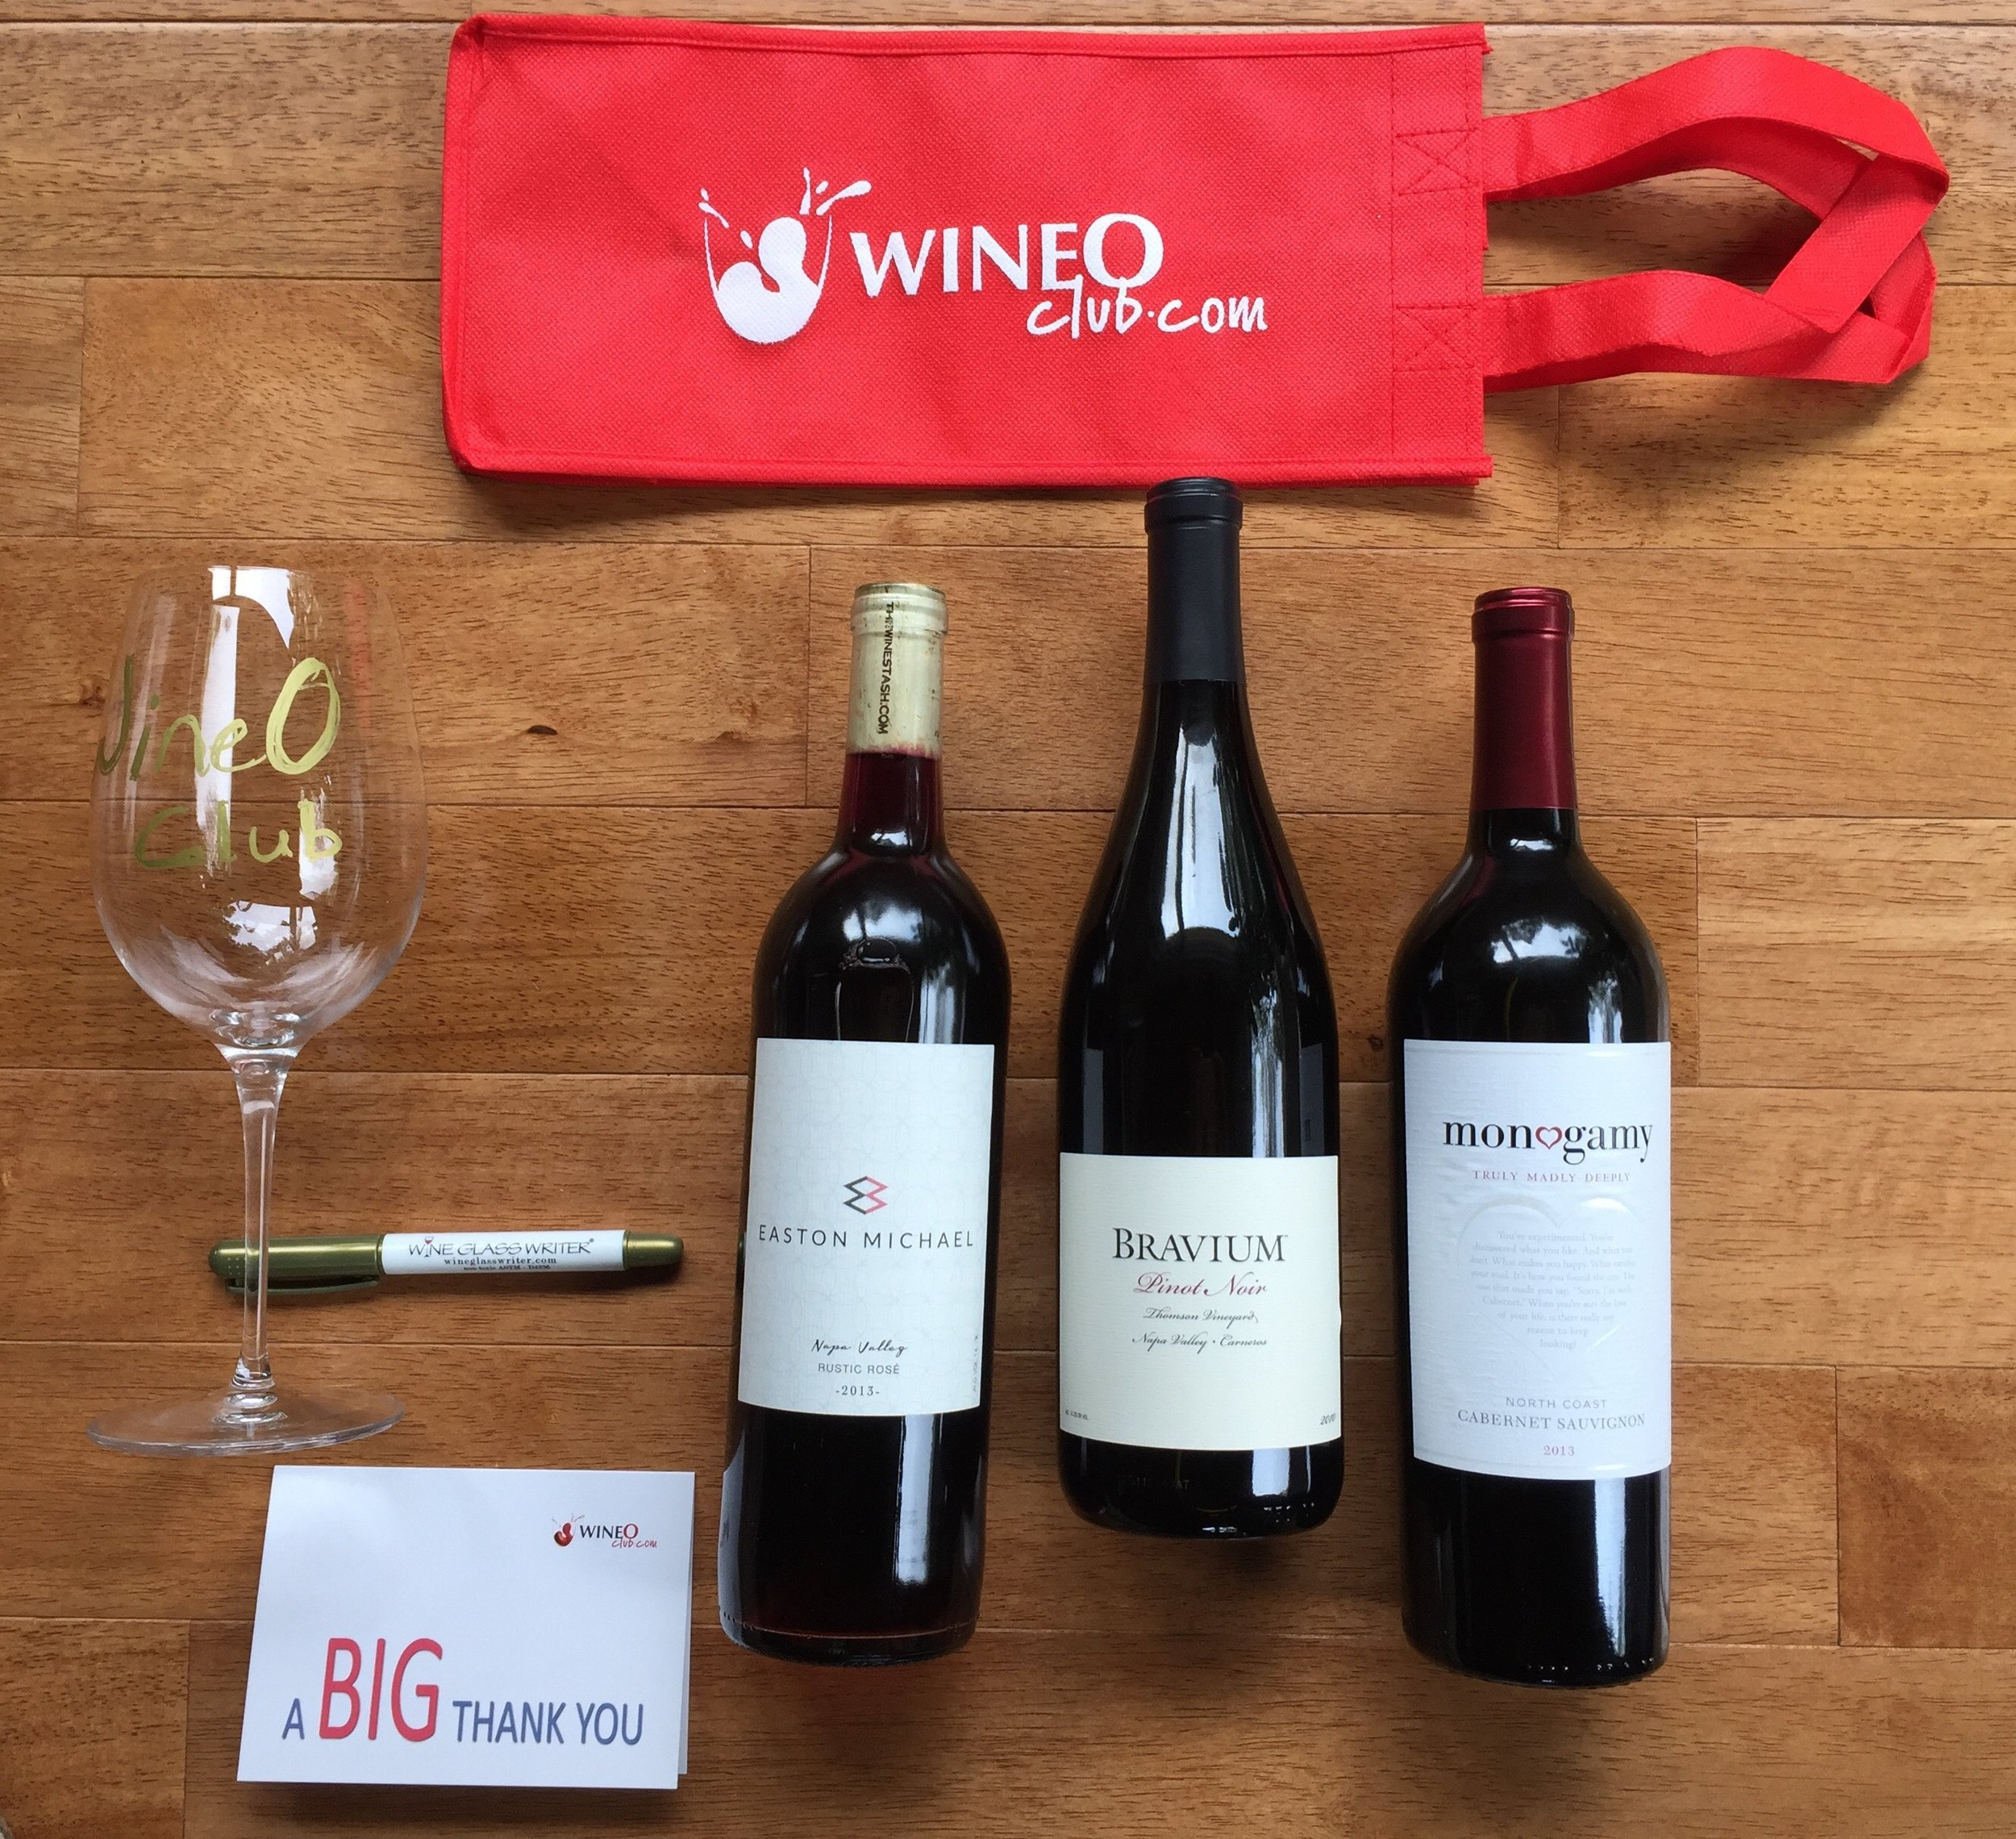 WineO Club Includes - * $85 per shipment* Four (4) Amazing bottles of wine straight to your door/office* Shipping Included* Quality wines straight from boutique and premium wineries* Discount and VIP access to WineO Events